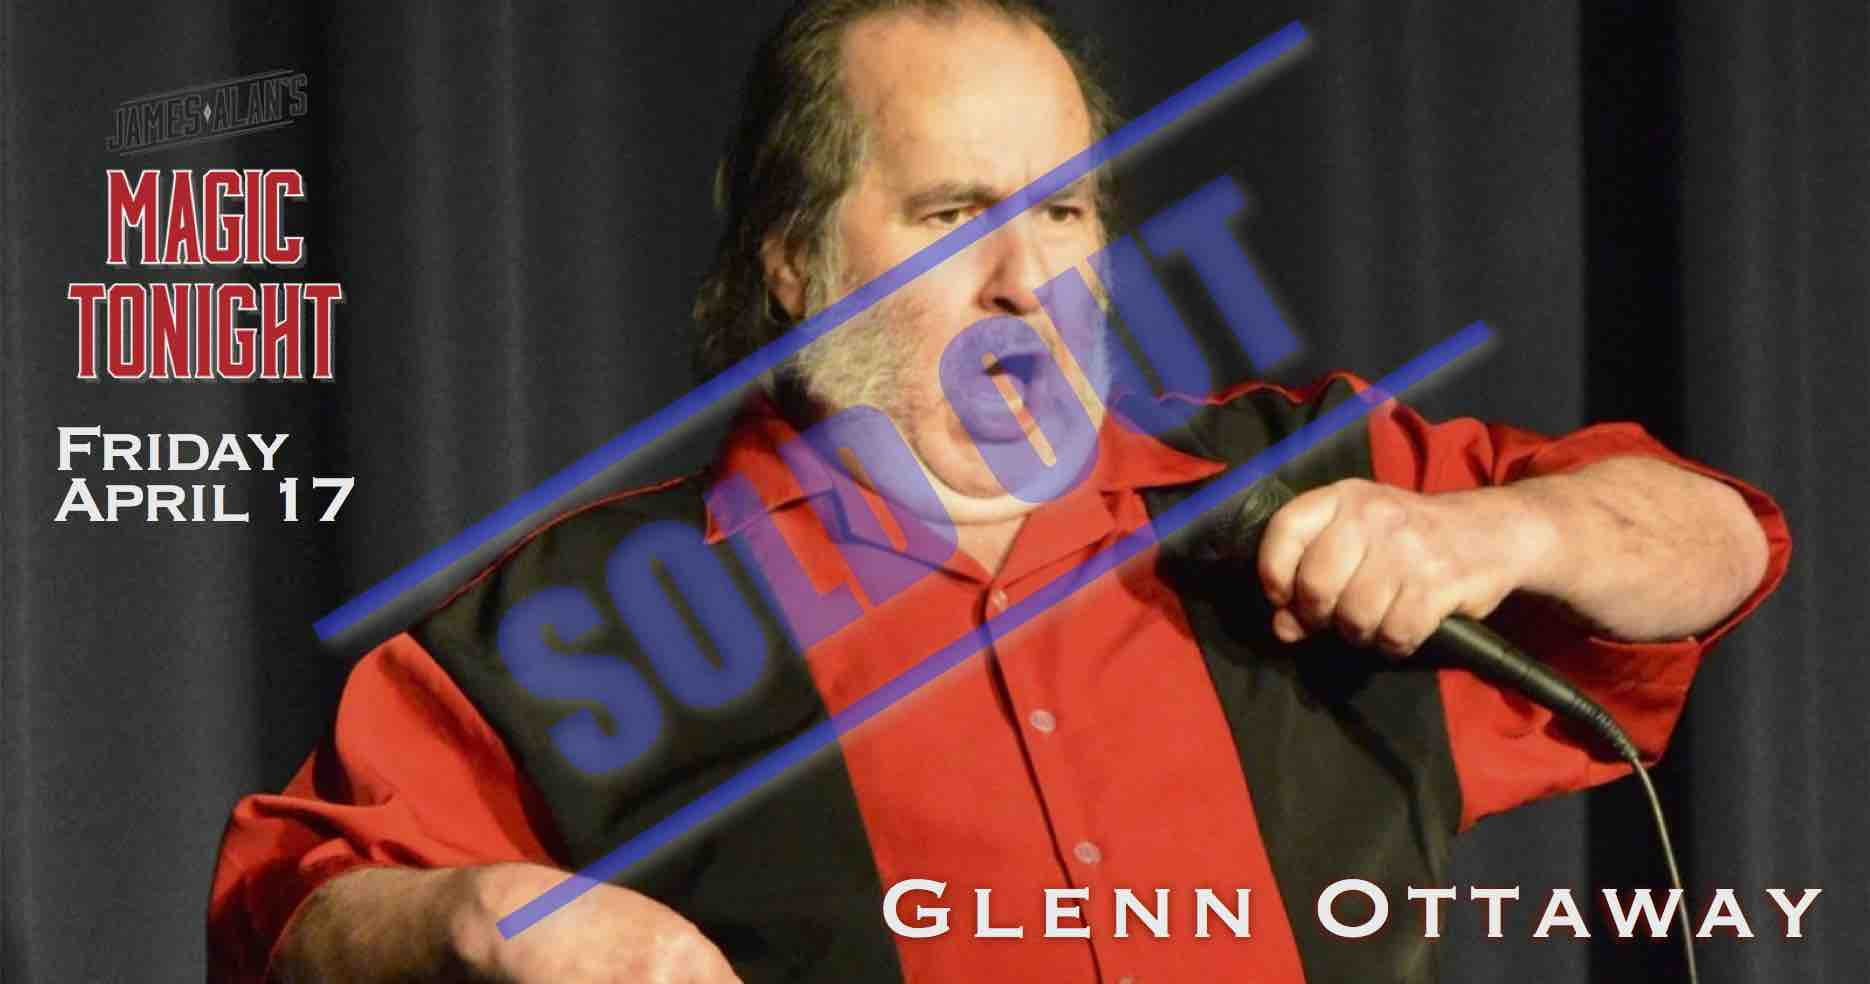 Apr 17 Glenn Ottaway sold out